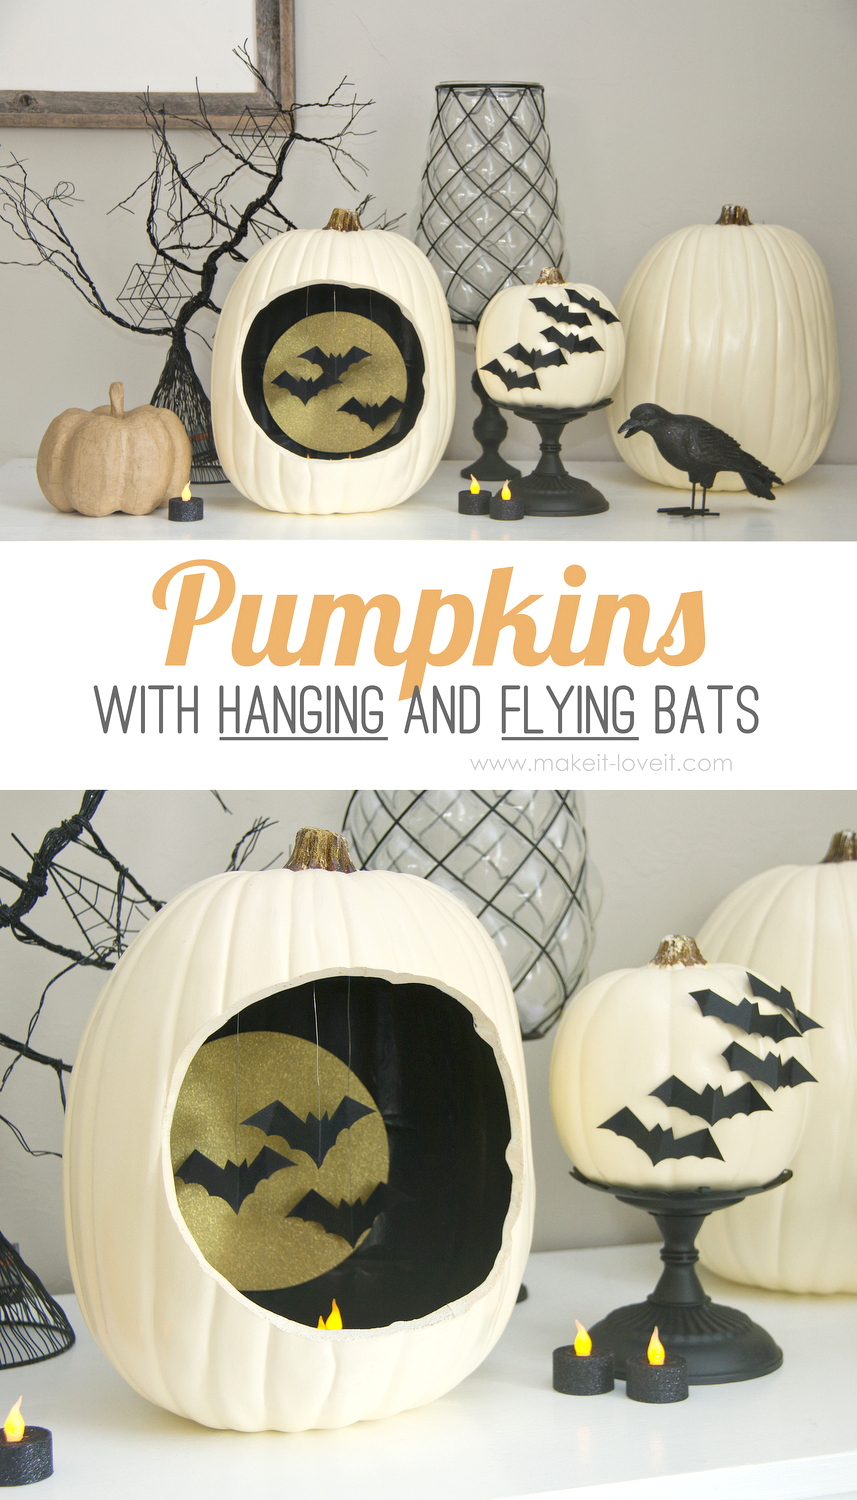 Pumpkins with Hanging and Flying Bats by Ashley Johnston